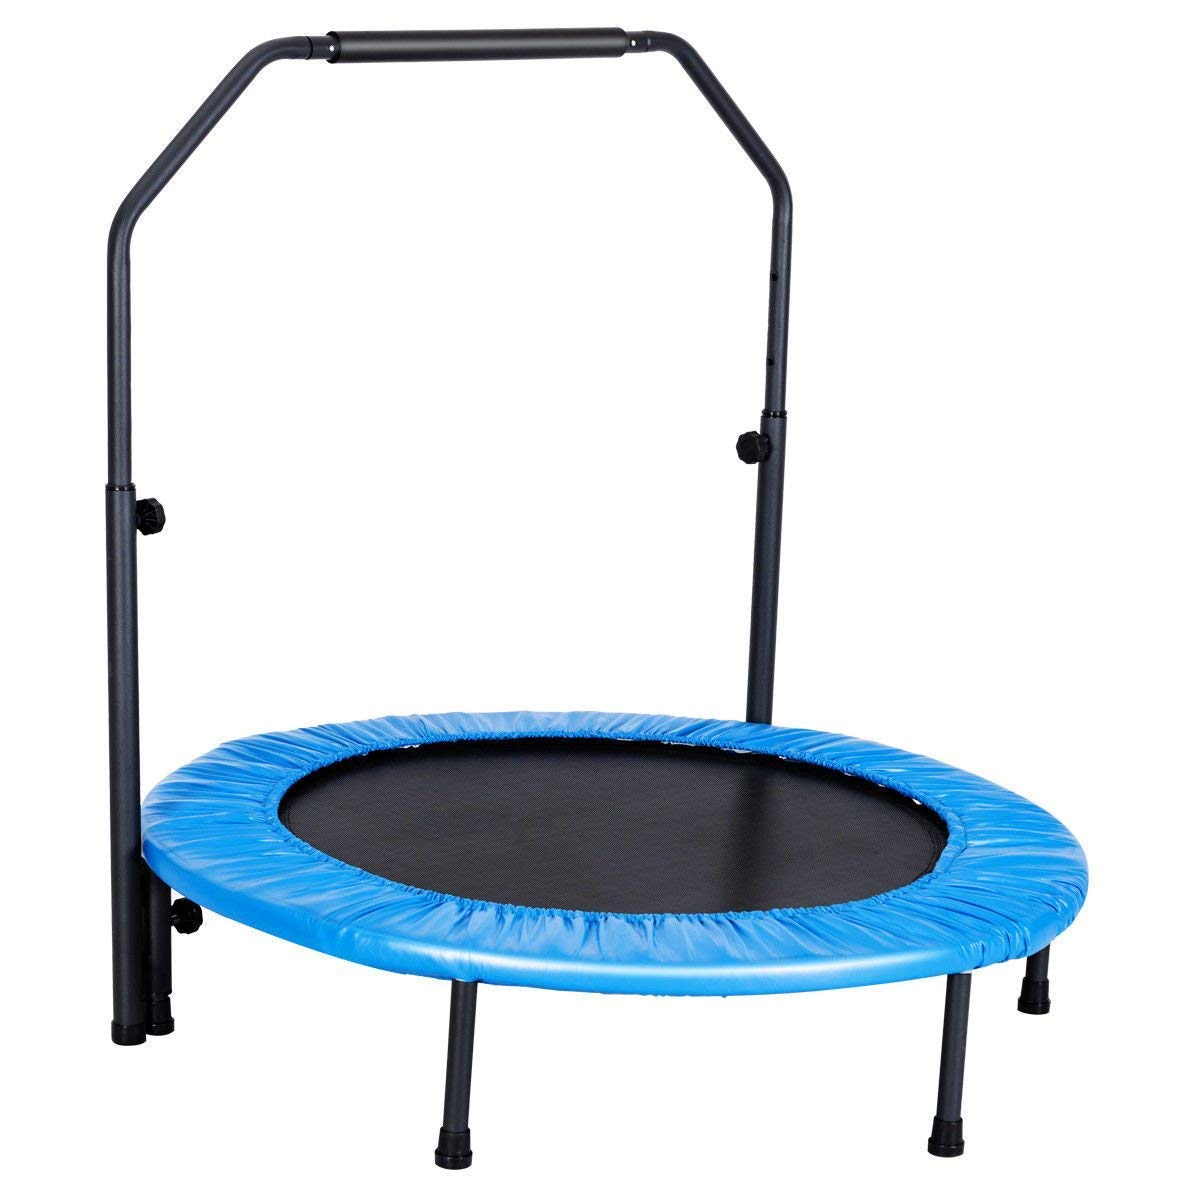 GYMAX Mini Trampoline, Rebounder Exercise Trampoline for Outdoor Indoor Fitness Workout, with Handle Rail